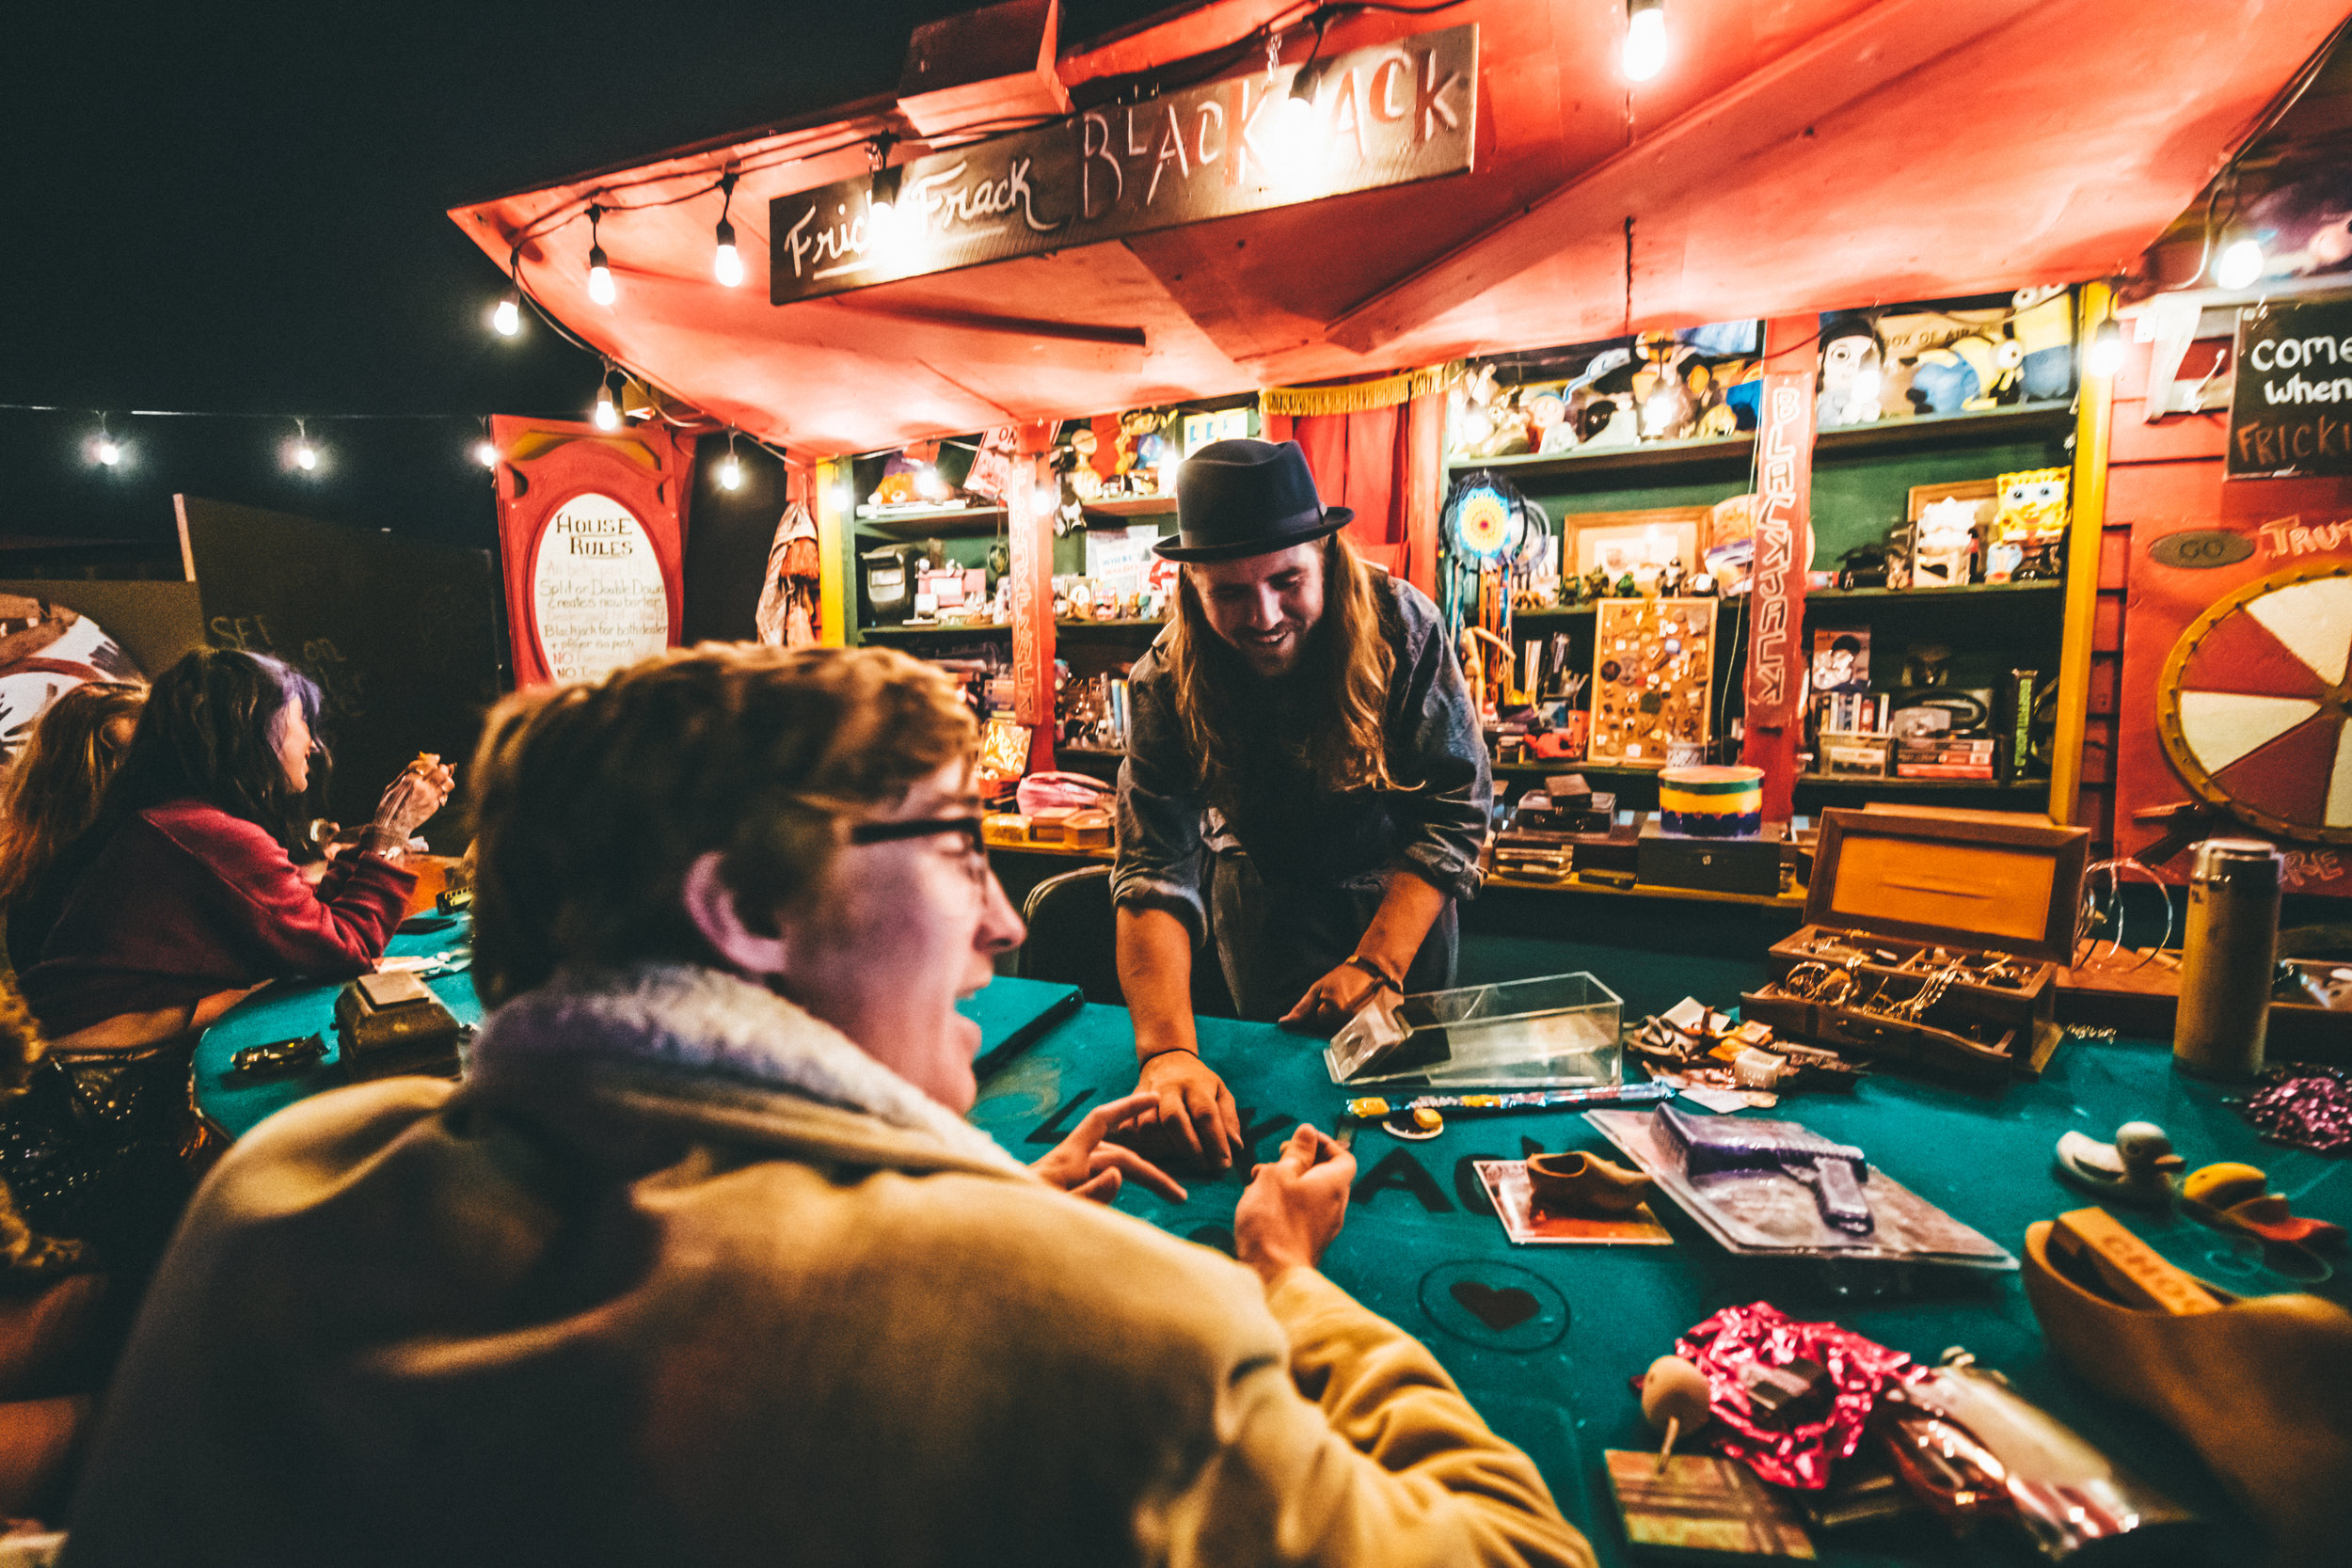 Festival goers play a game of black jack at the Grand Artique   📷: Juliana Bernstein